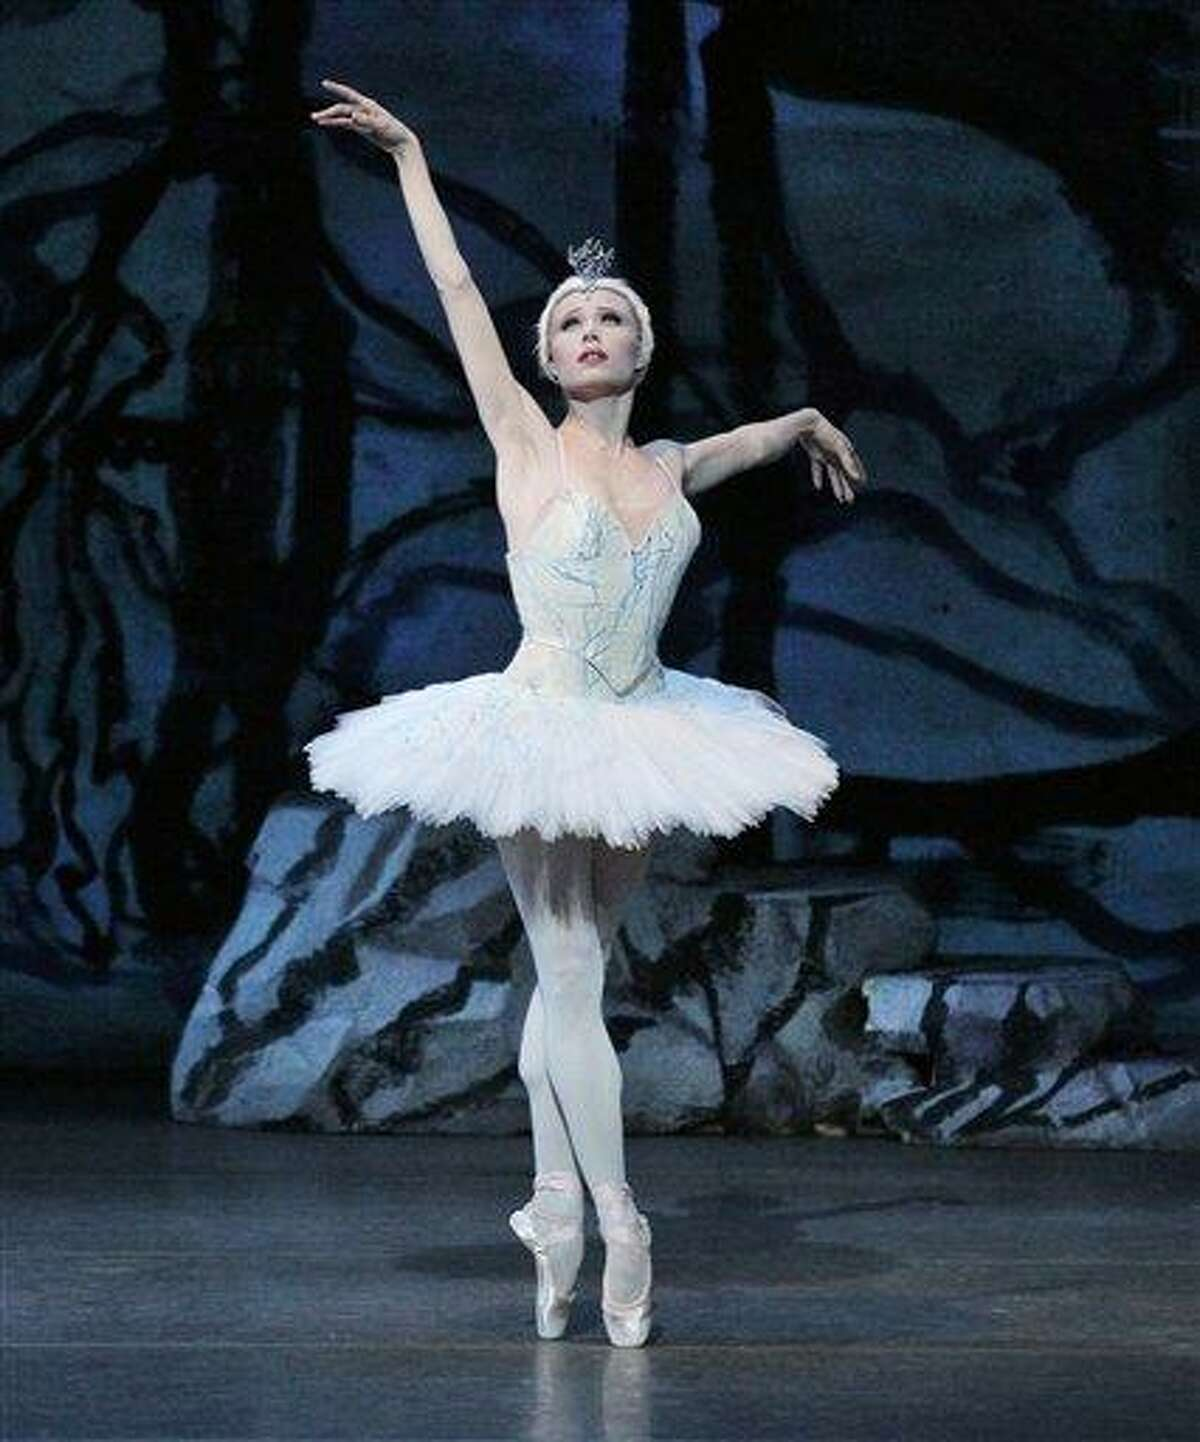 In this Feb. 11, 2011 photo released by the New York City Ballet, Sara Mearns performs in